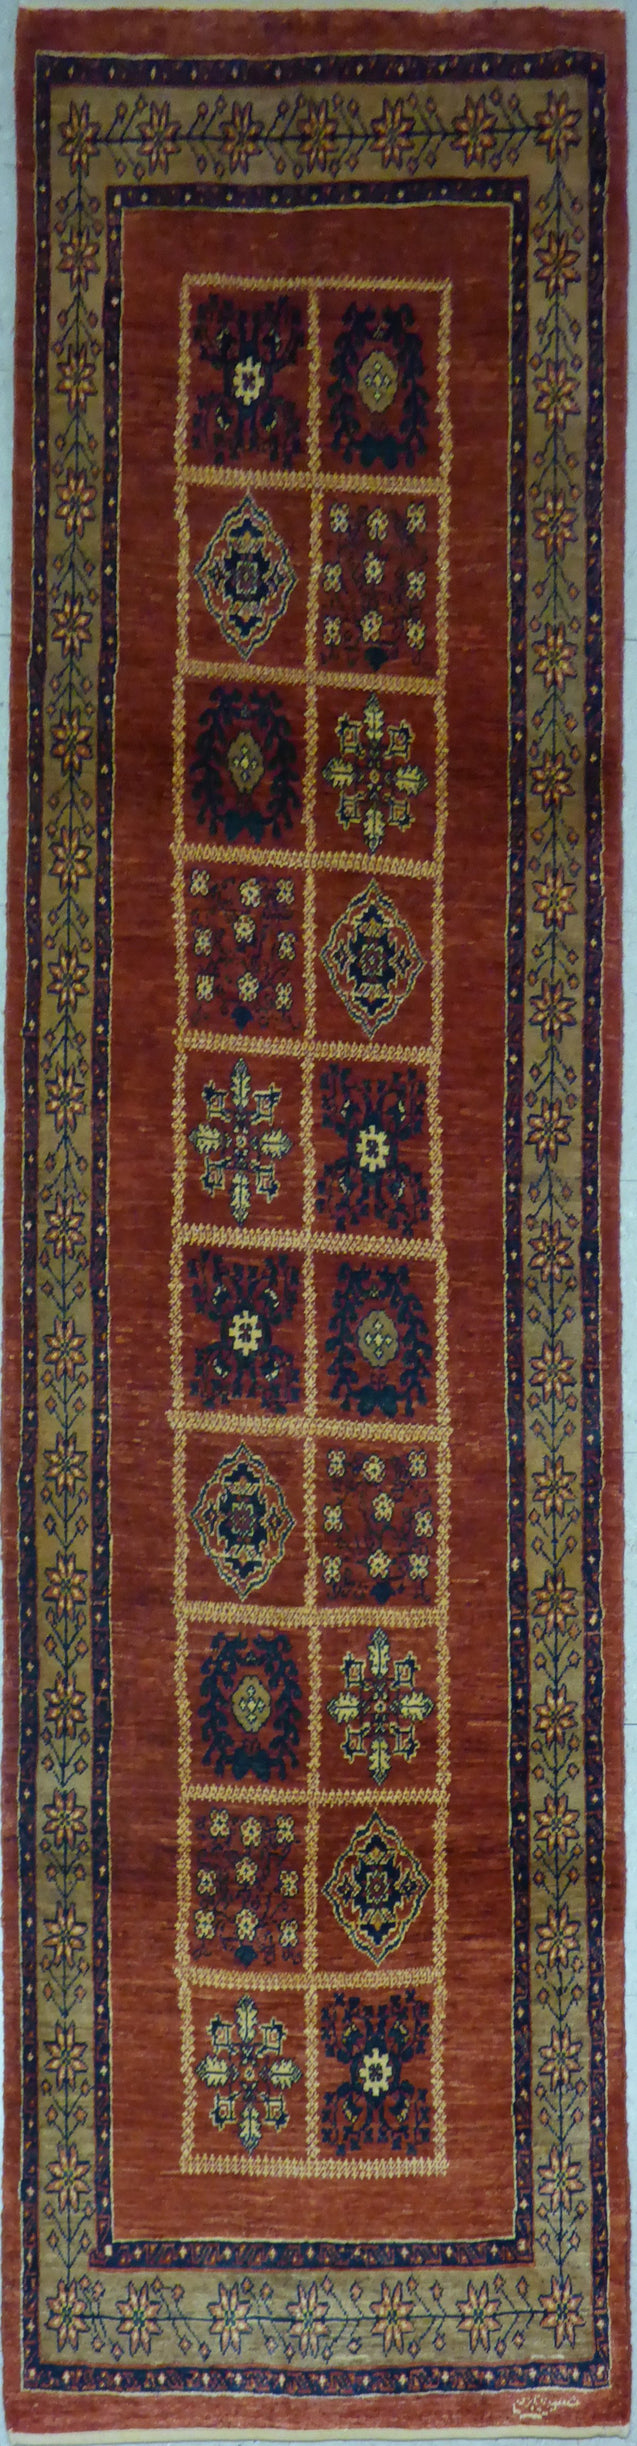 "2'7"" x 9'11""   Persian Kashkuli Runner Rug Top View"